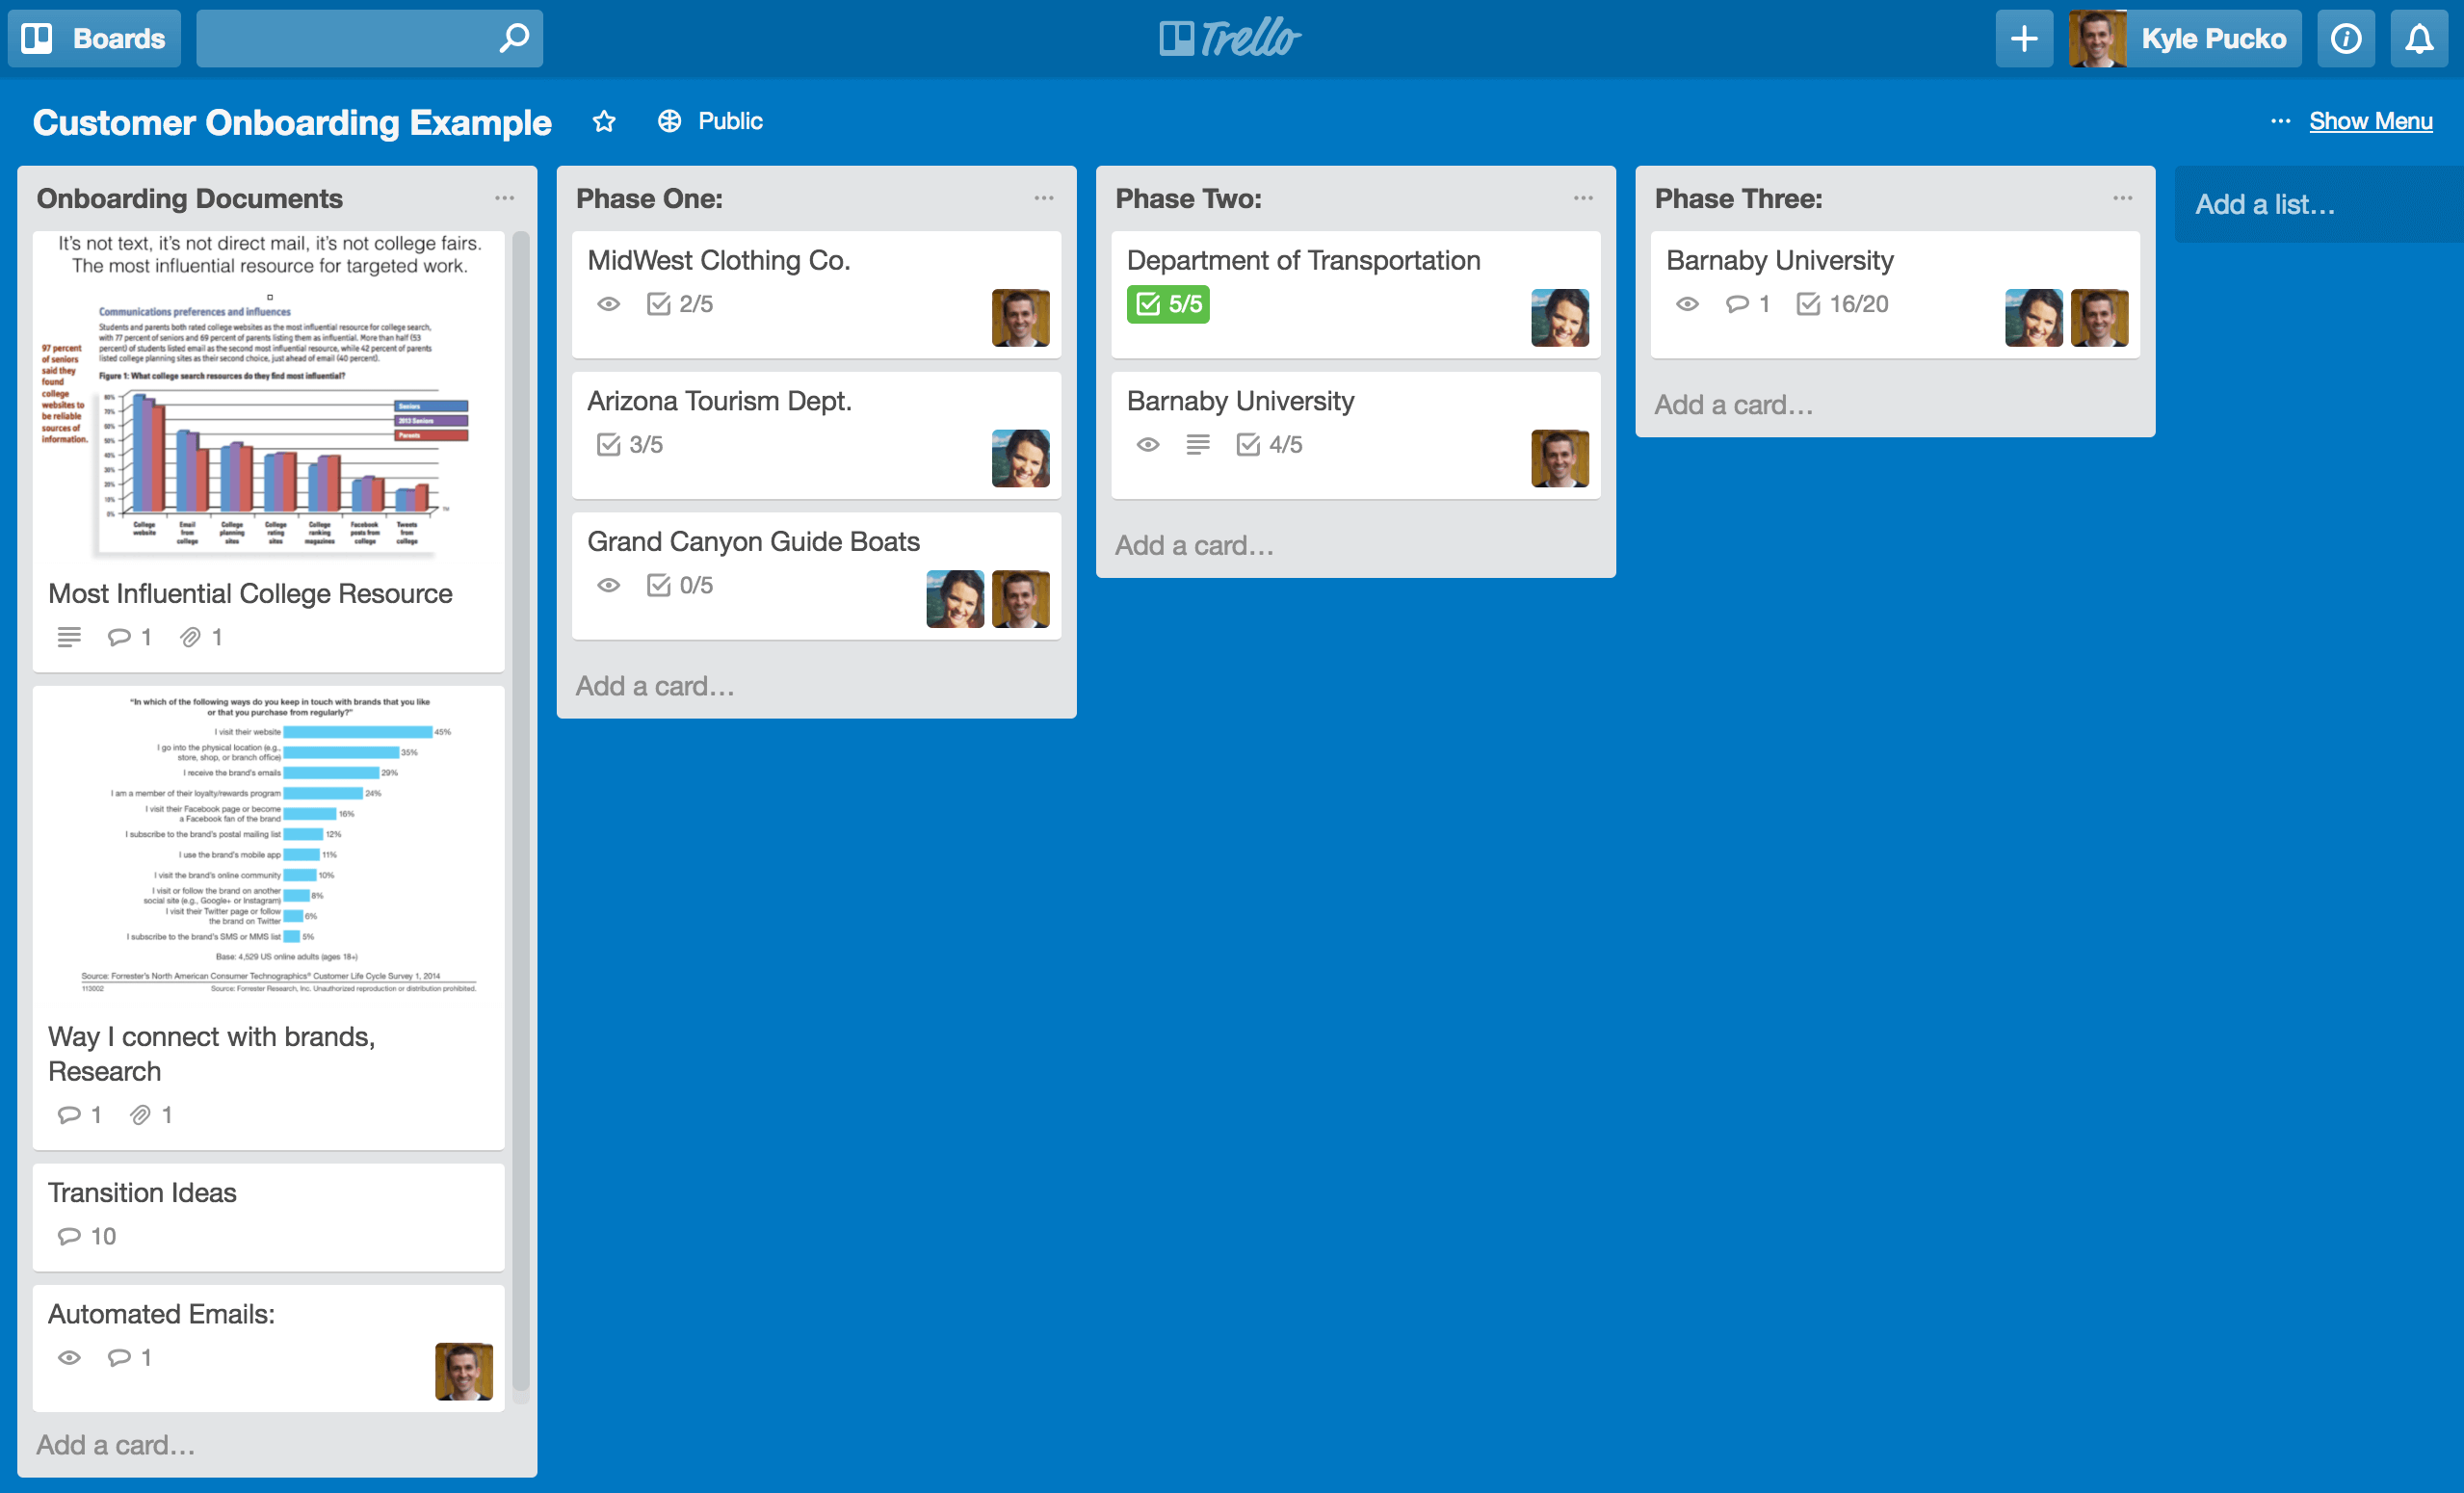 Customer-Onboarding-Trello-Board.png